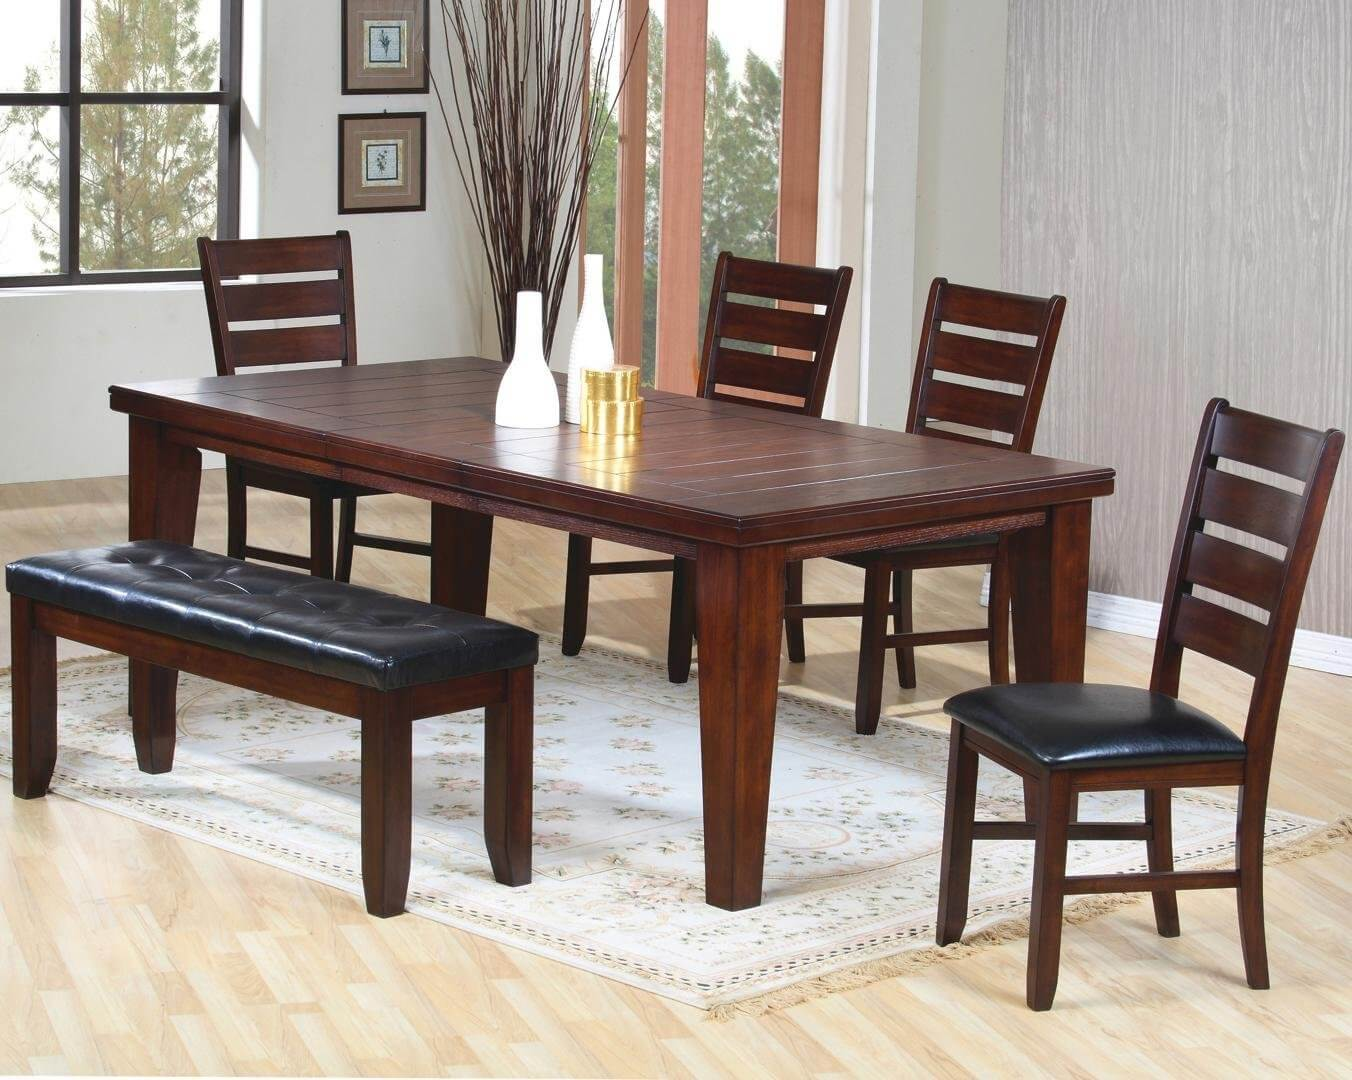 Charmant Solid Wood Six Piece Dining Set With Cushioned Bench. The Finish Is Dark  Oak Wood